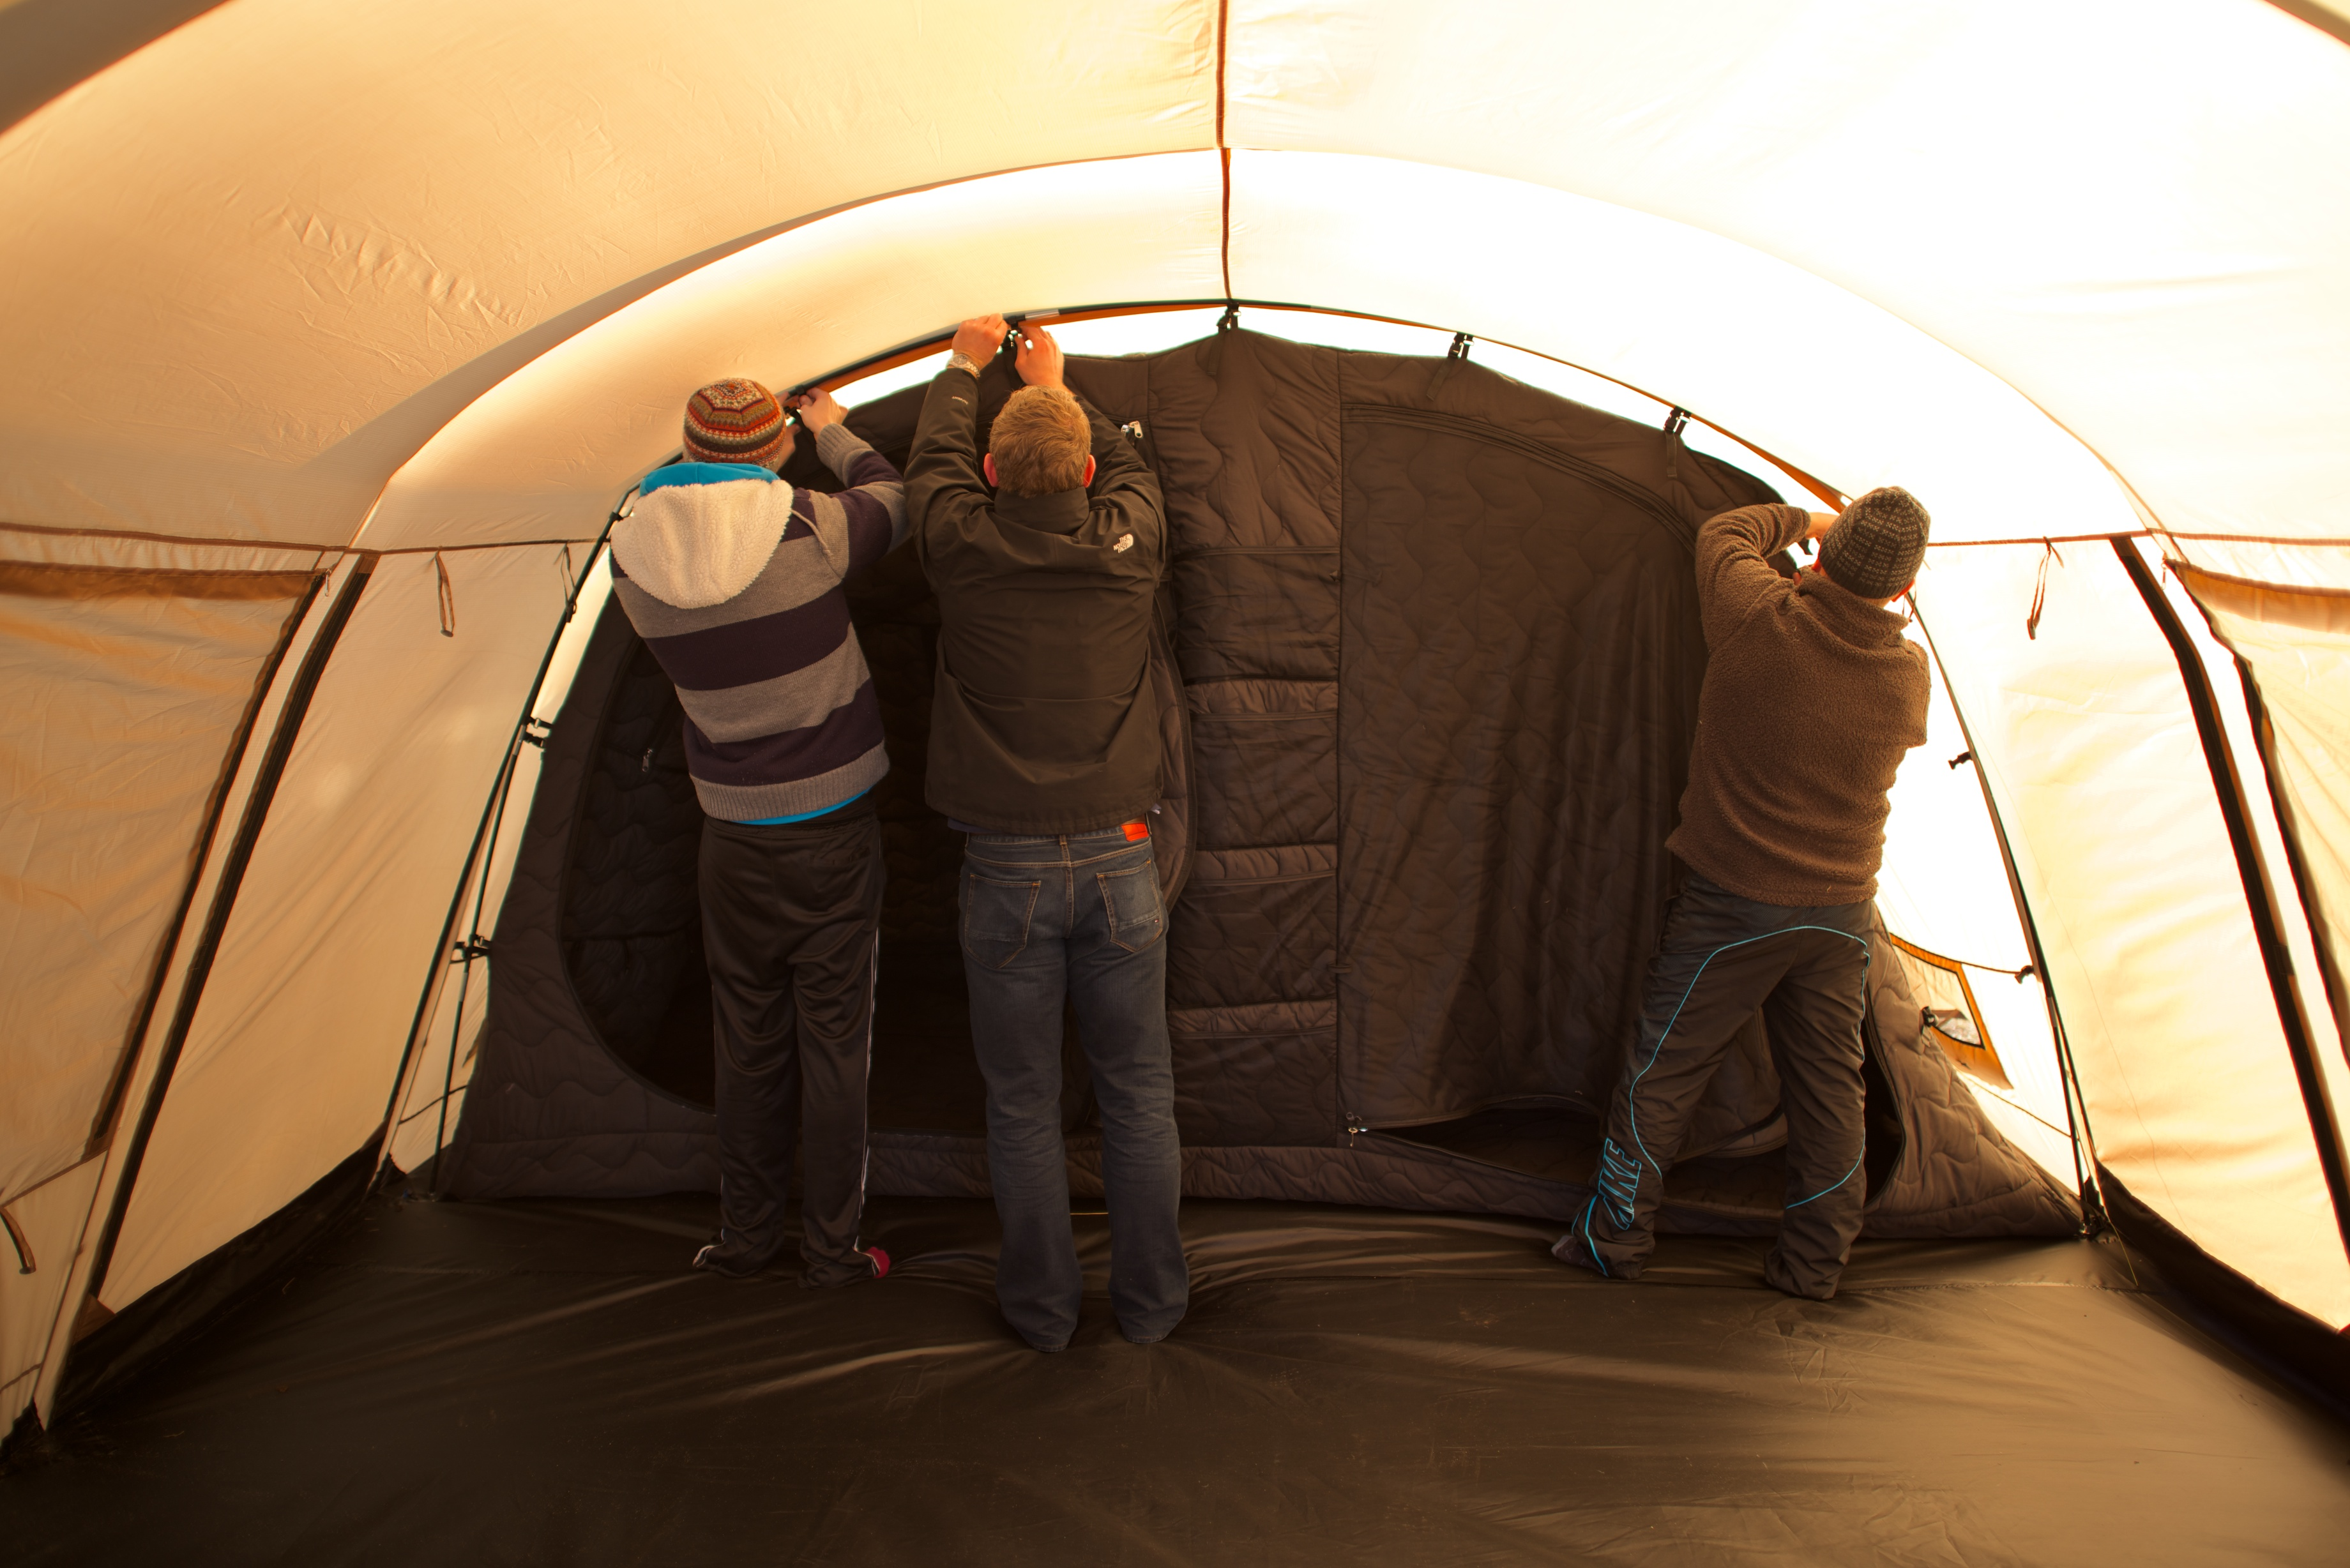 ... youu0027ll be able to pre-order Thermo Tents through Kickstarter.com or through thermotents.com u2013 and weu0027ll be in selected stores throughout Ireland ... & JOE meets the Irishman behind Thermo Tent - the worldu0027s u0027very ...